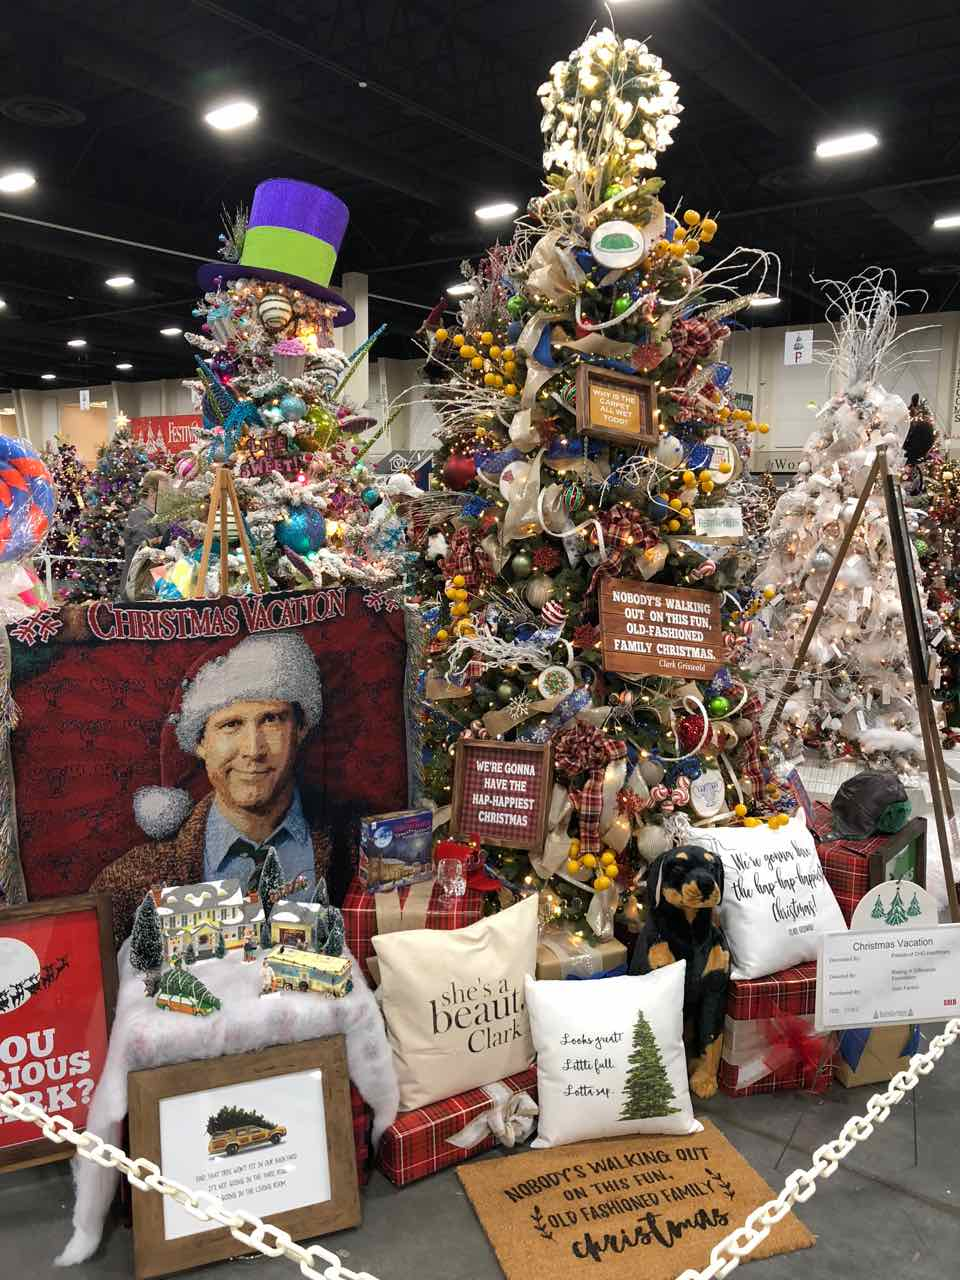 Griswolds Christmas Vacation themed Christmas tree